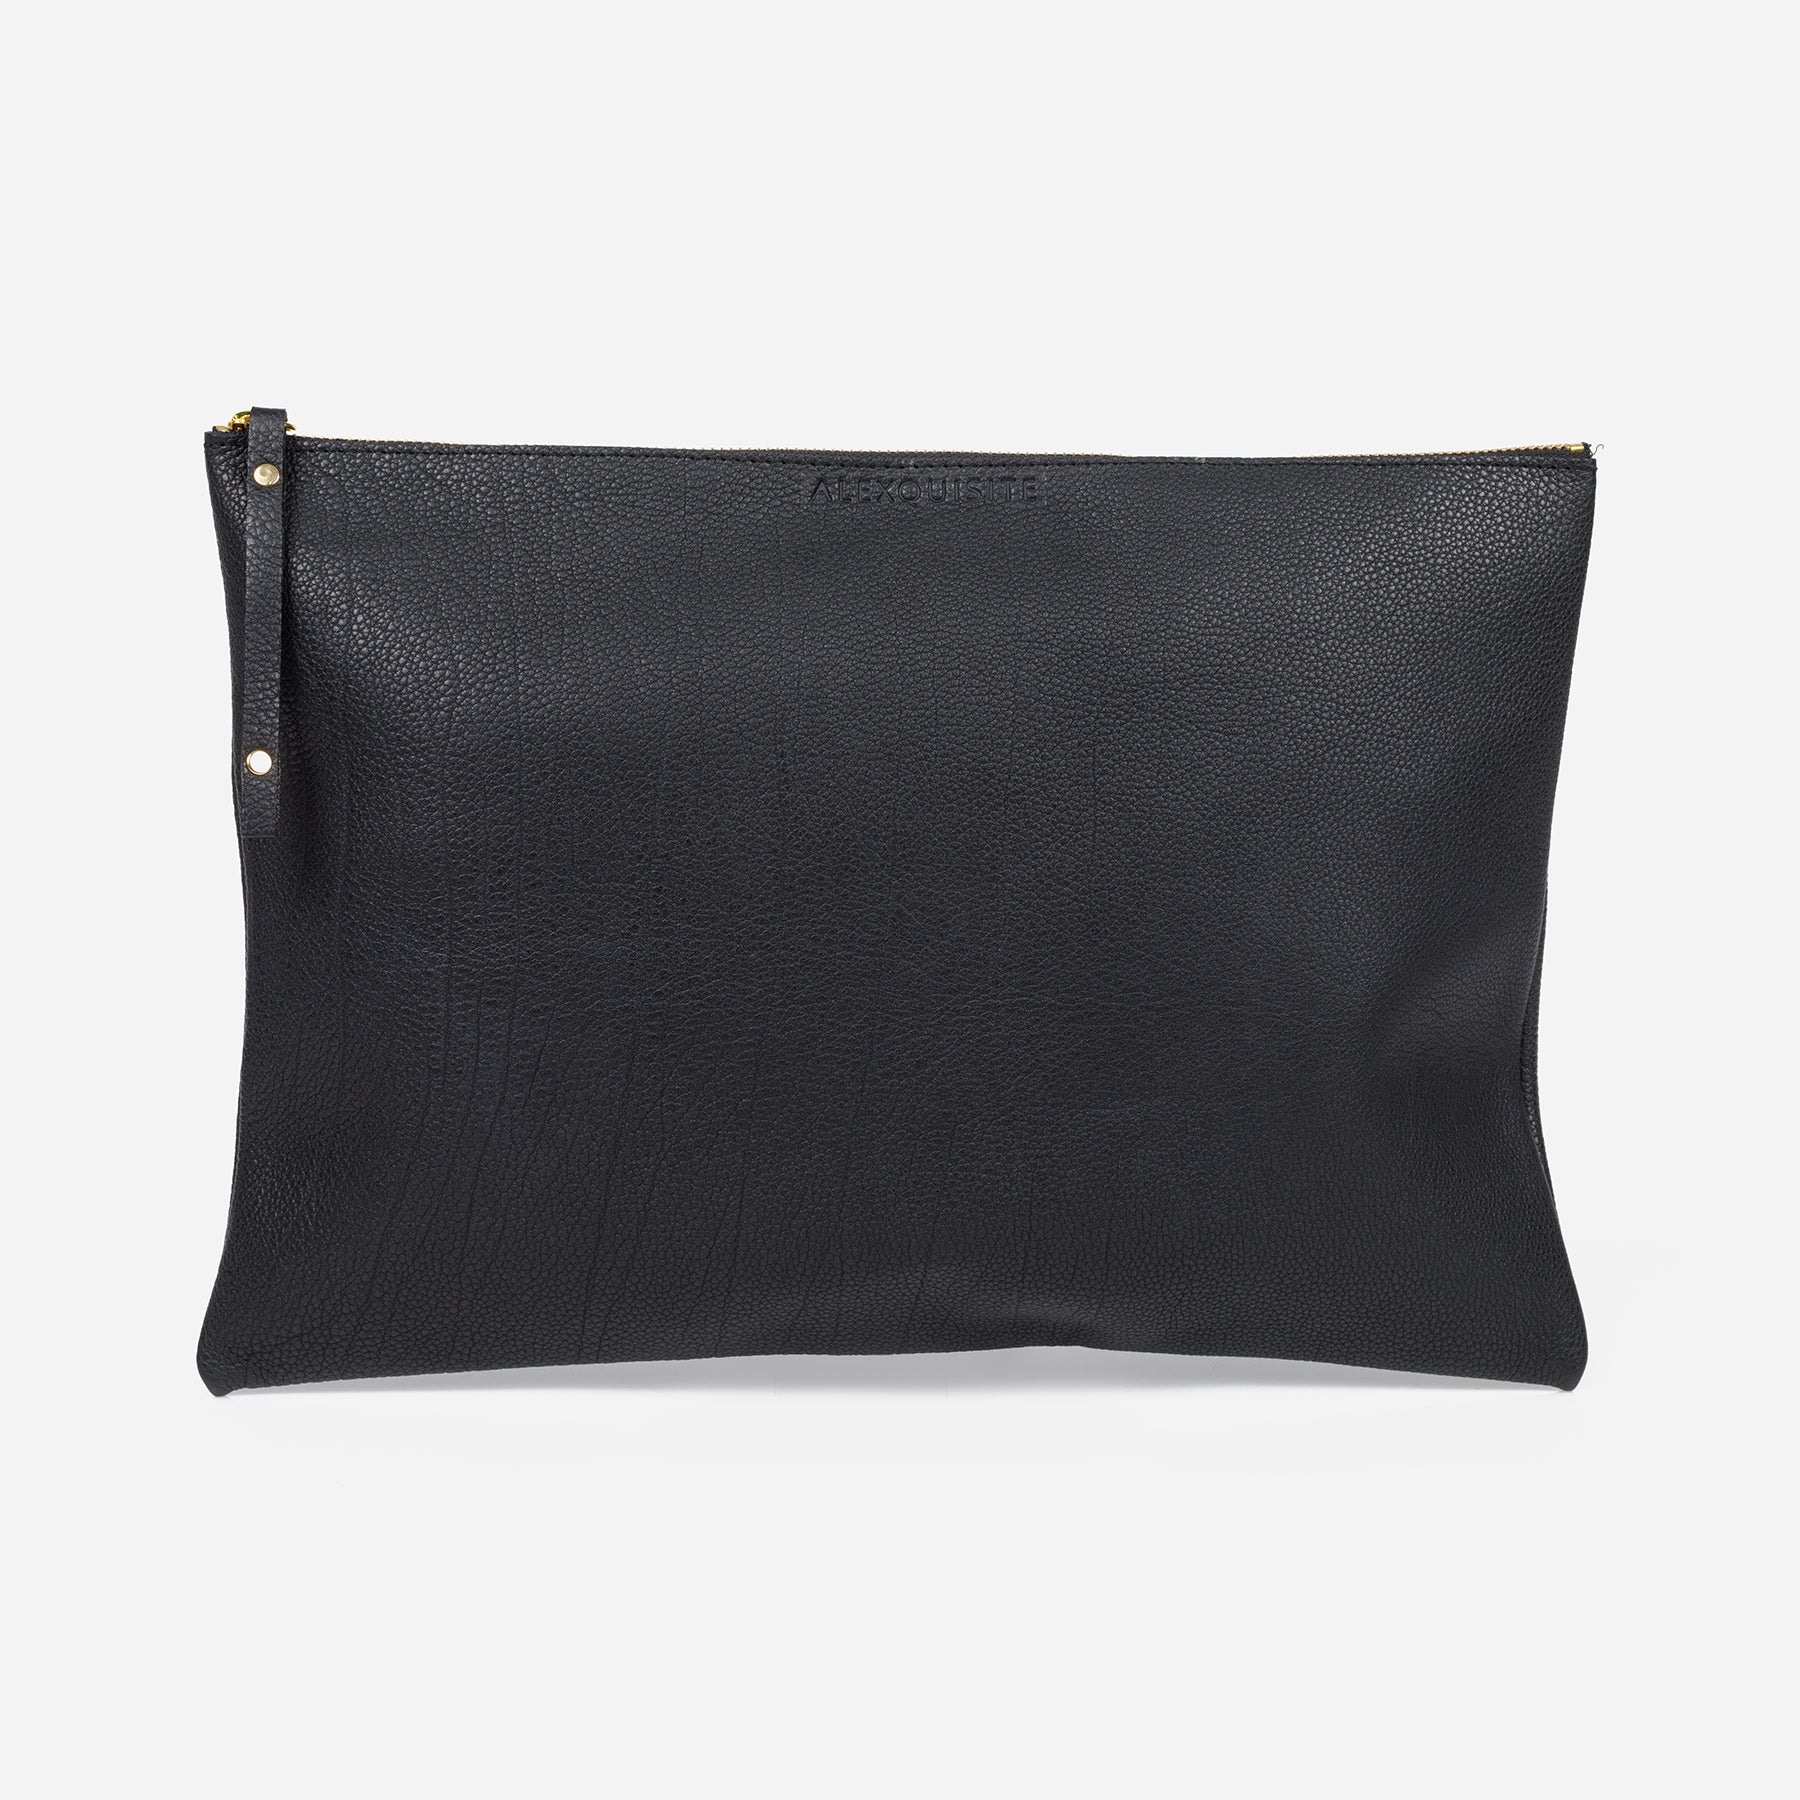 Pure Leather Pouch Bag - Black by Alexquisite on OOSTOR.com